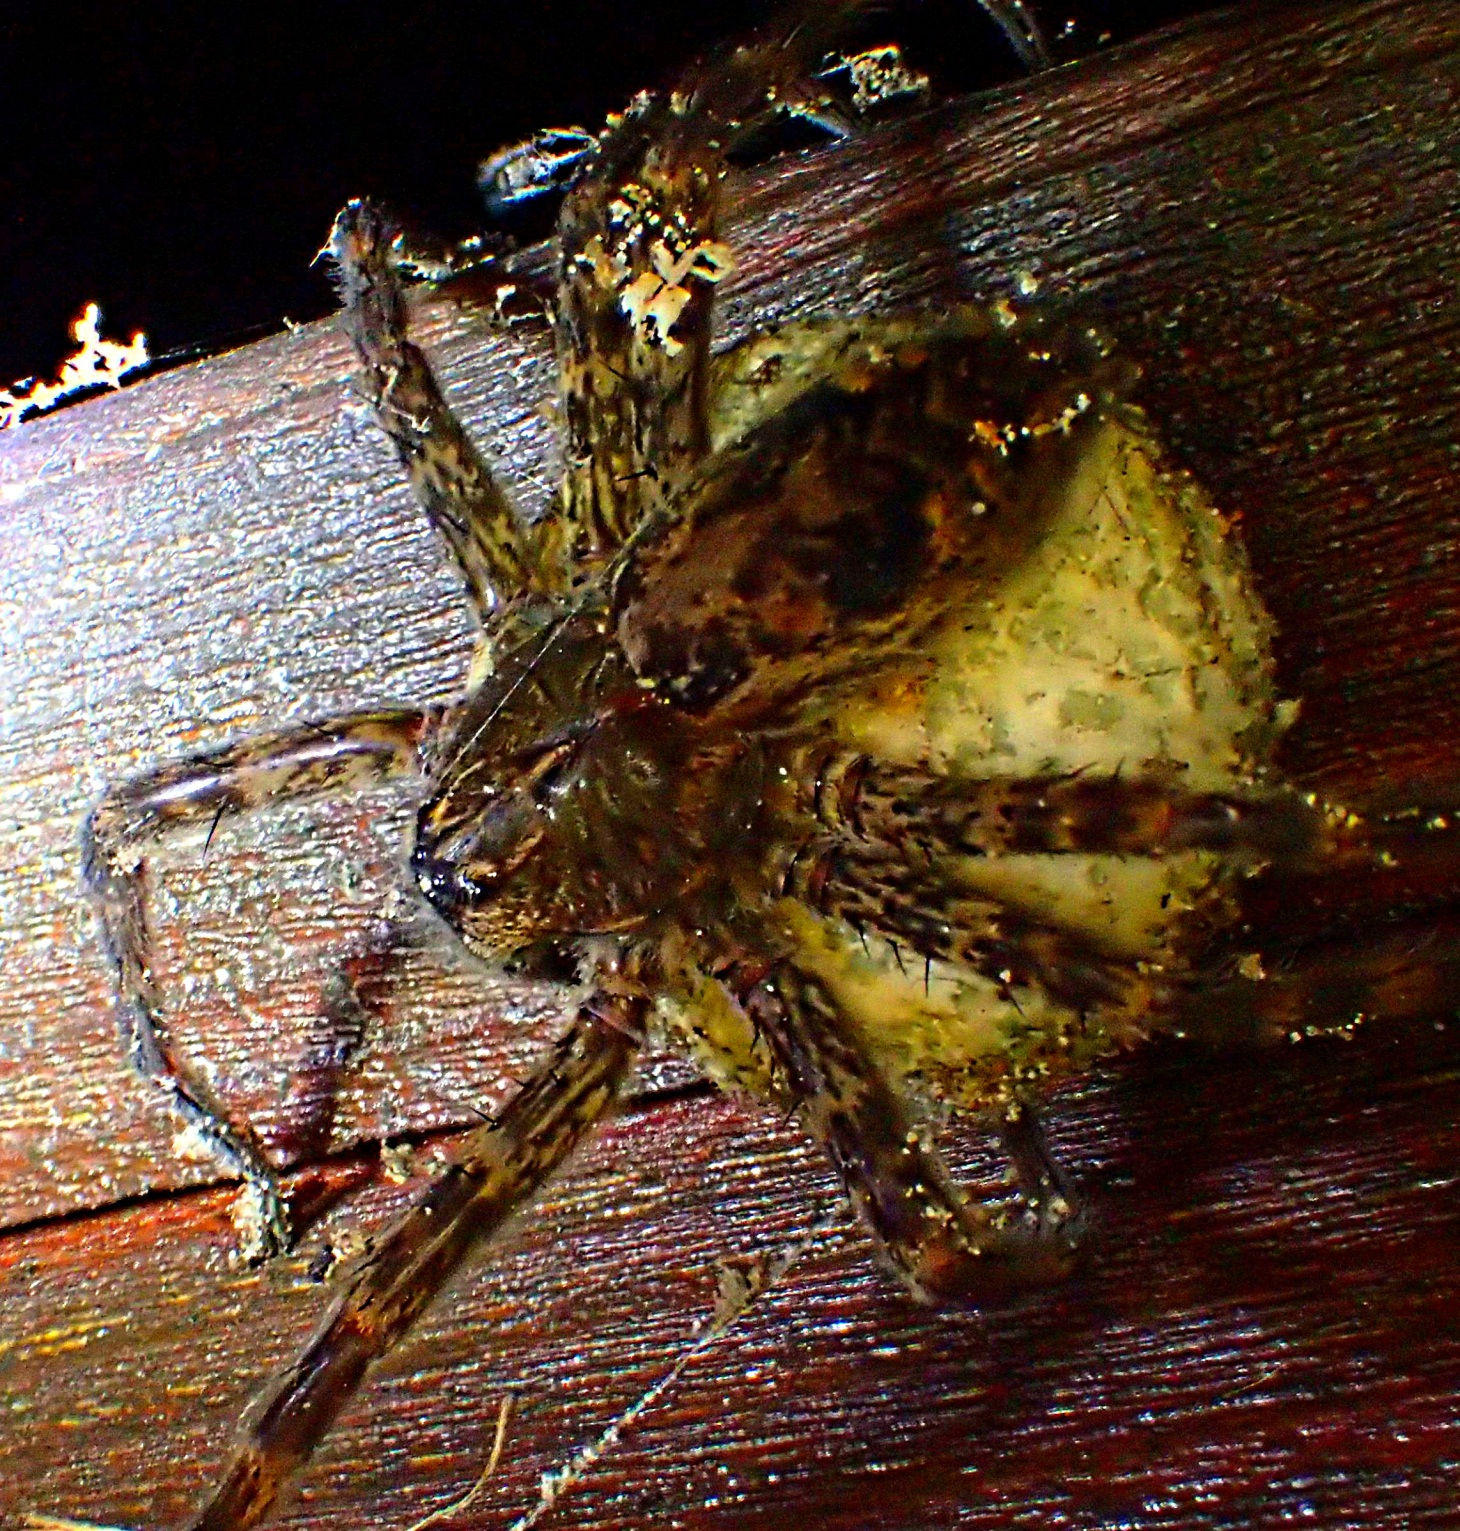 Not an itsy bitsy spider by any means!  Photo by Thomas Peace 2014